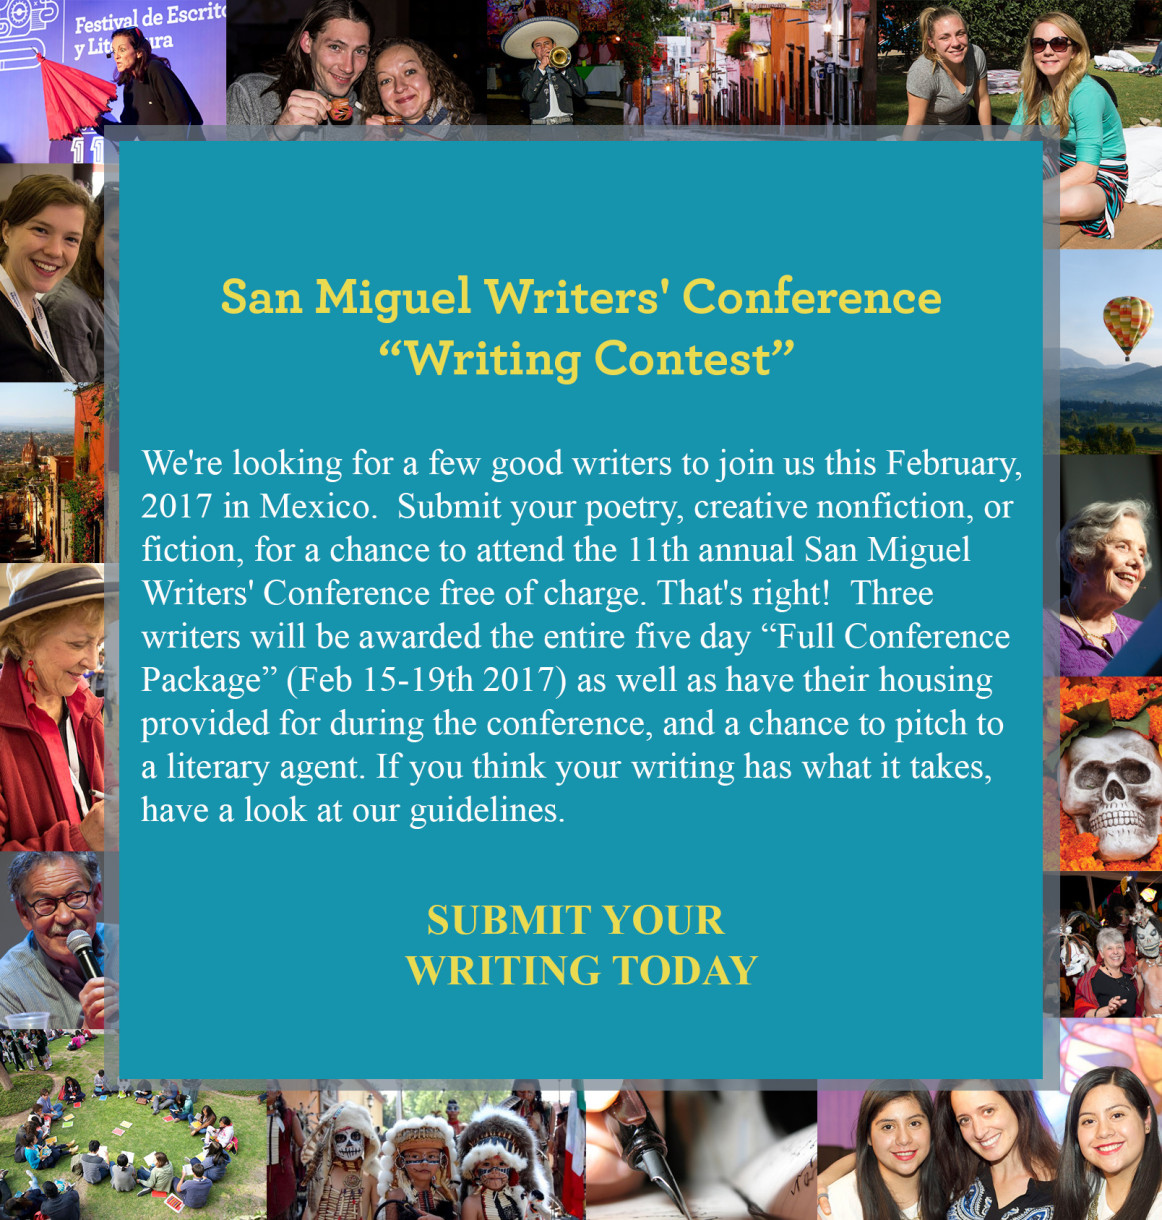 SMWC Writing Contest promo